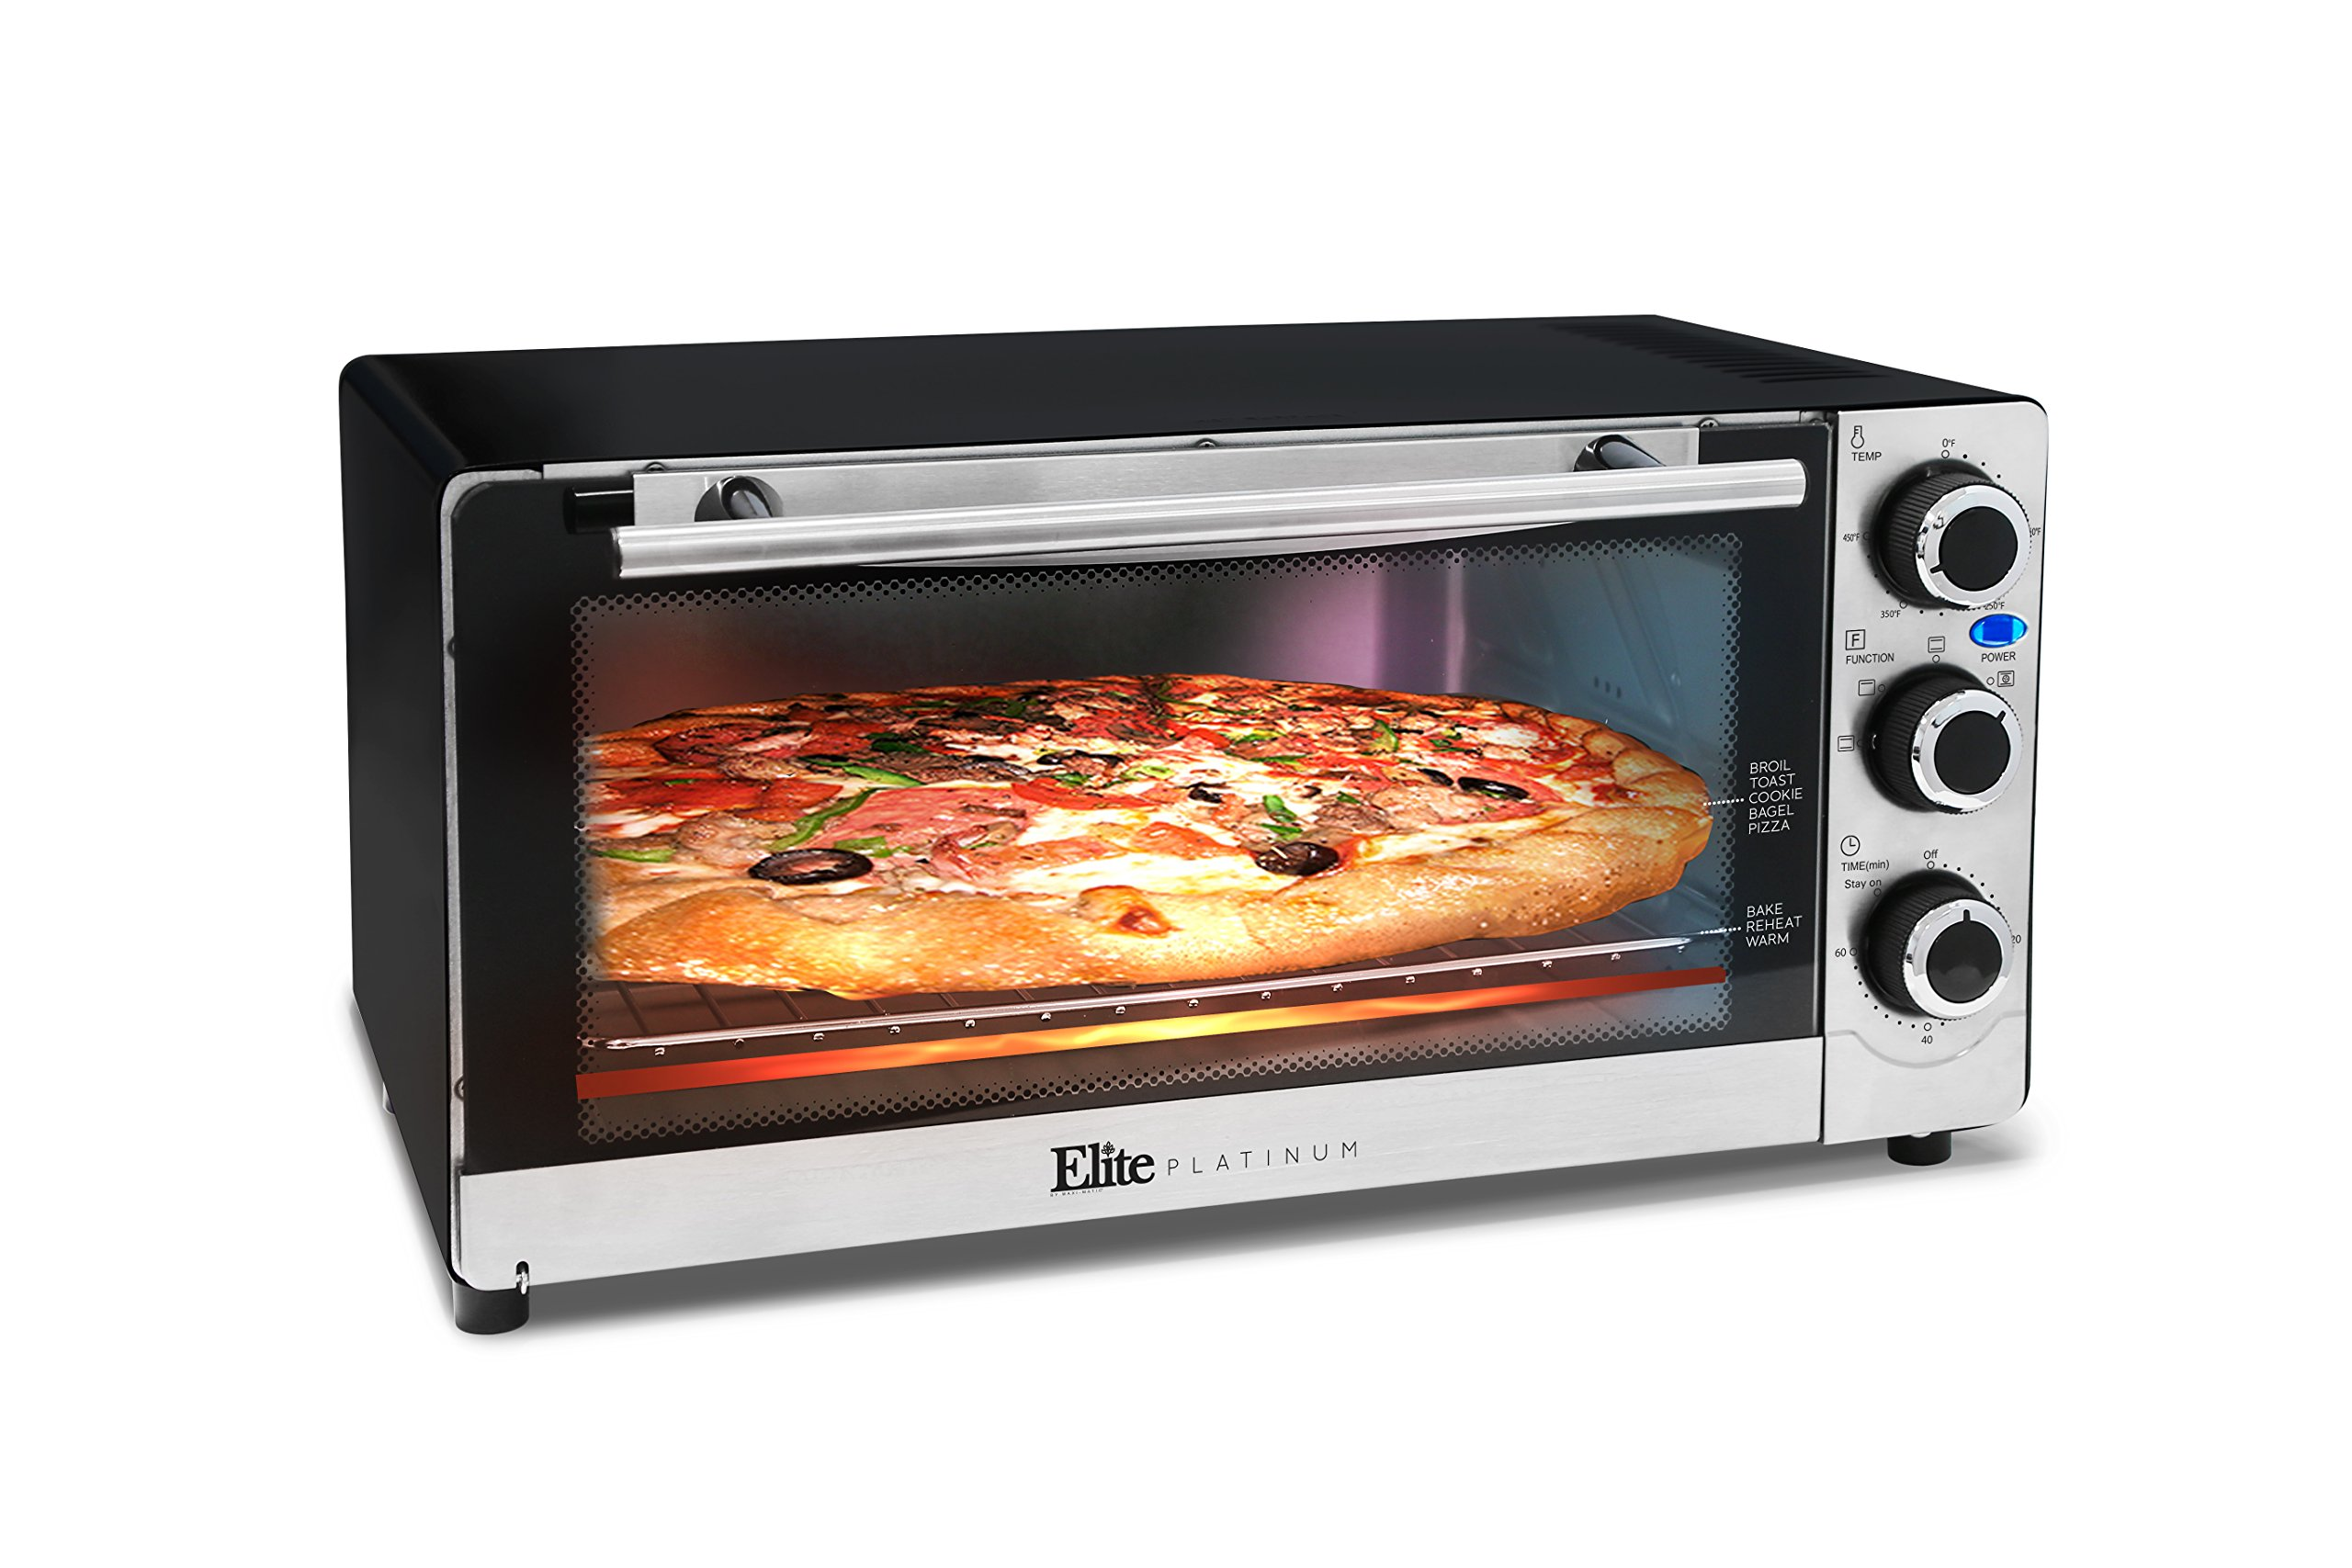 Elite Platinum ETO-140C Countertop Convection 6-Slice Toaster Oven, Stainless Steel/Black